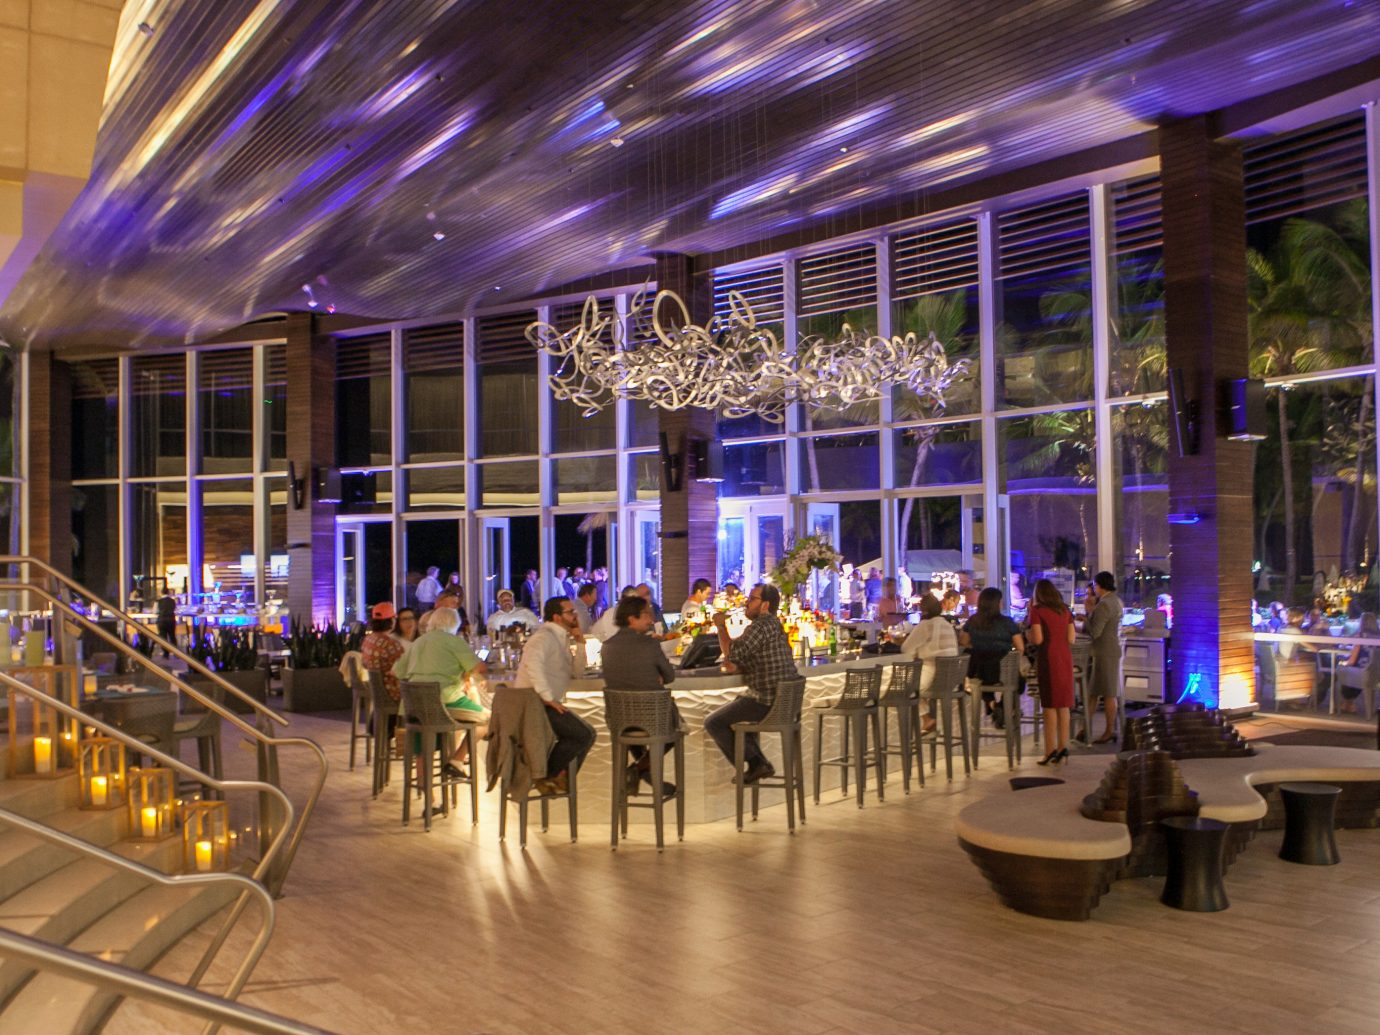 Food + Drink floor building indoor function hall shopping mall Lobby convention center interior design ballroom Resort auditorium night